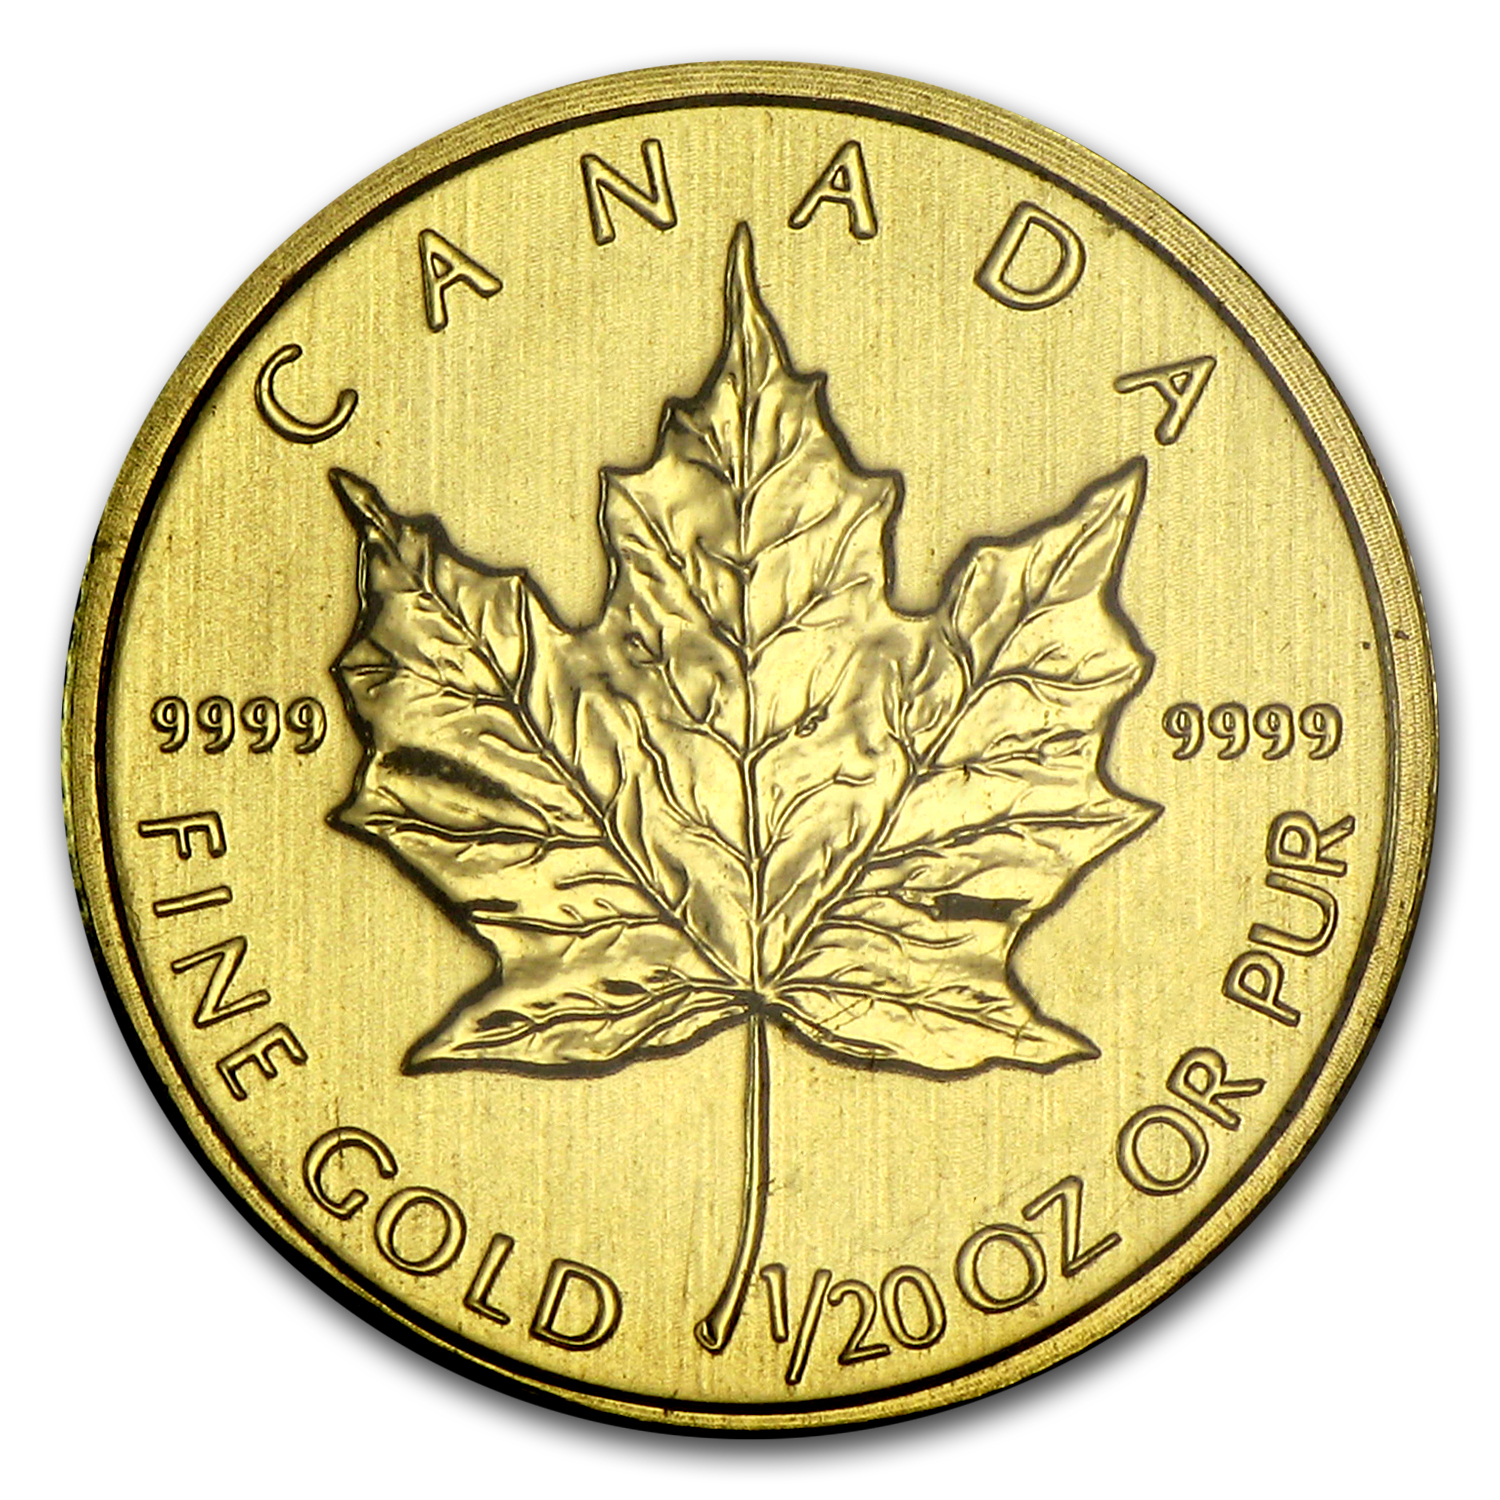 2012 Canada 1/20 oz Gold Maple Leaf BU